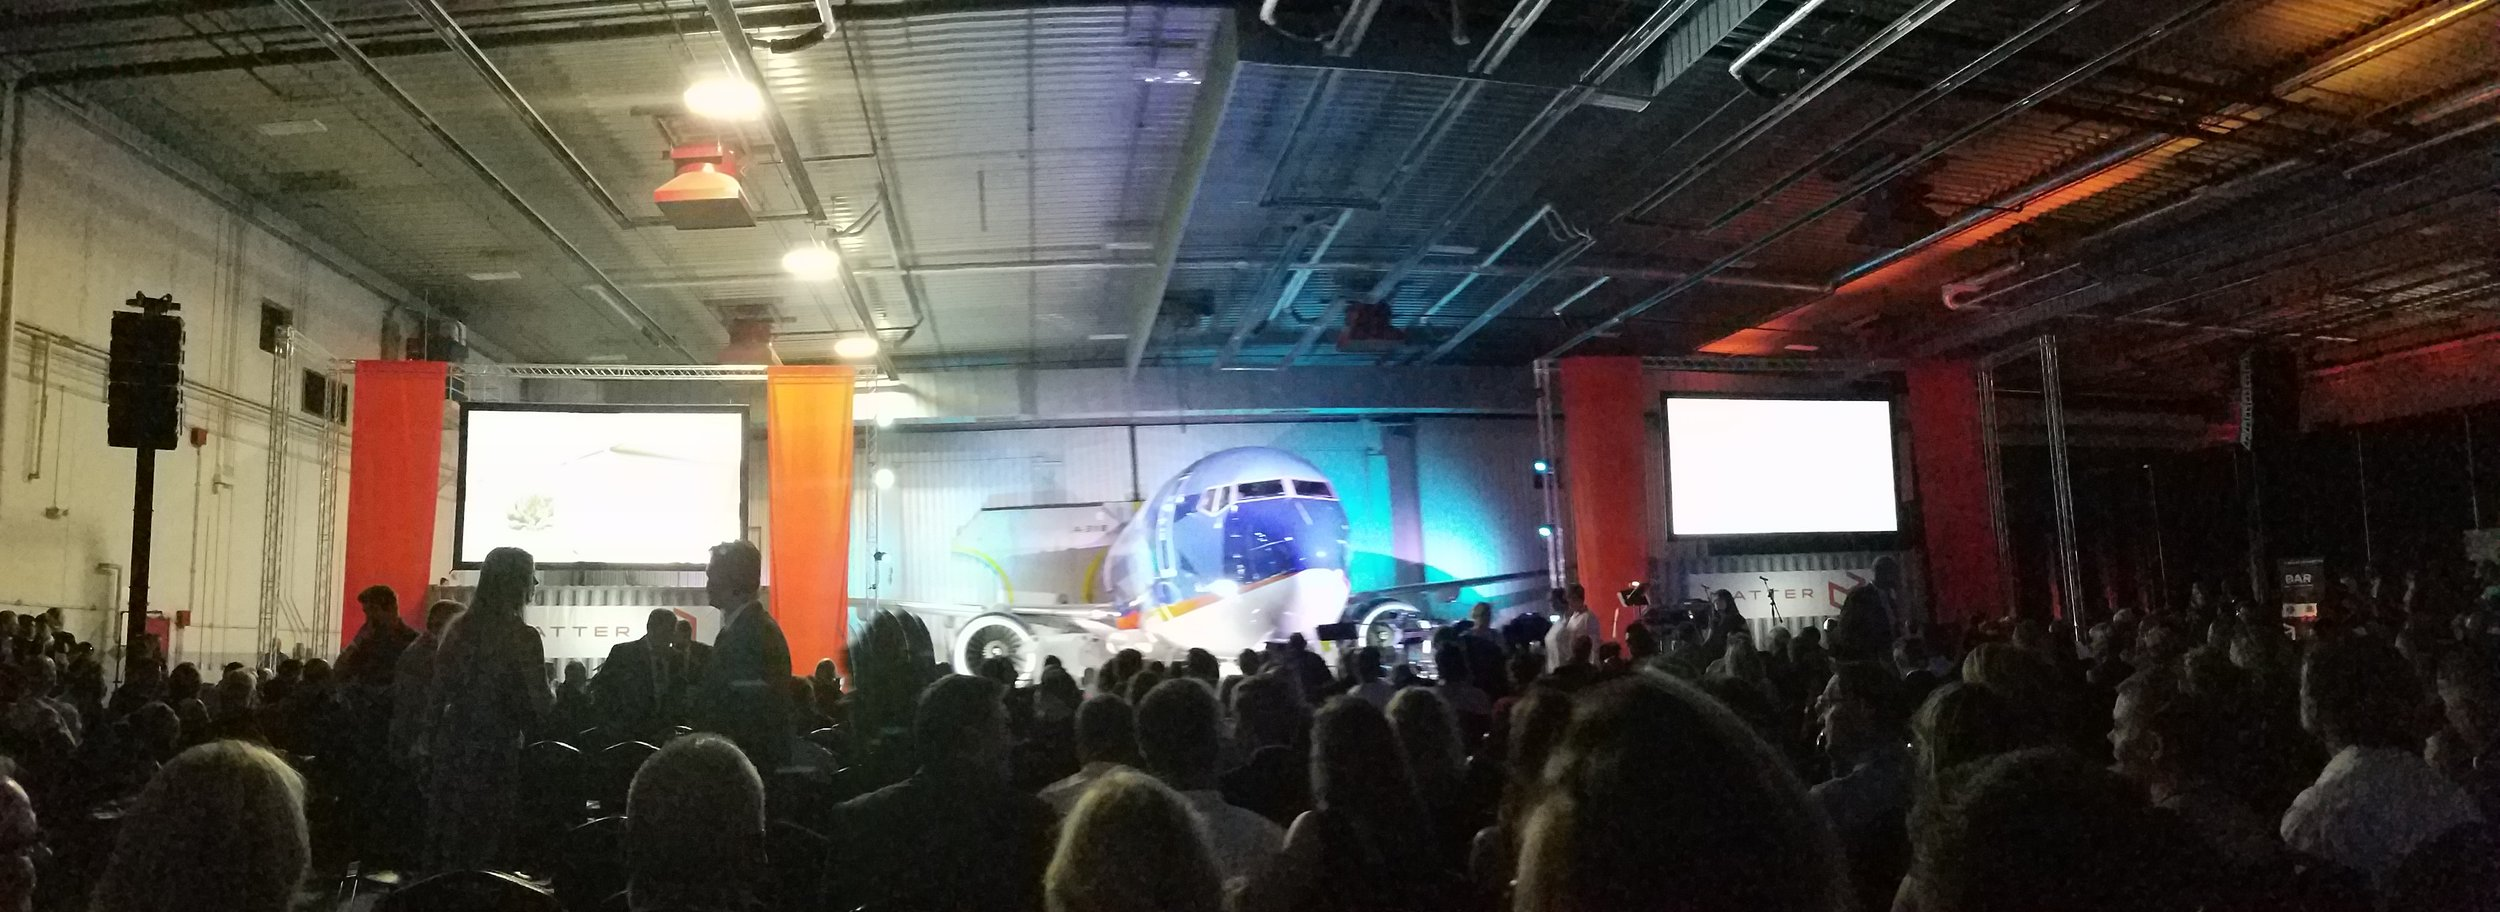 A Night to Matter at Sun Country's cargo hangar.  The stage is set with containers and an airplane